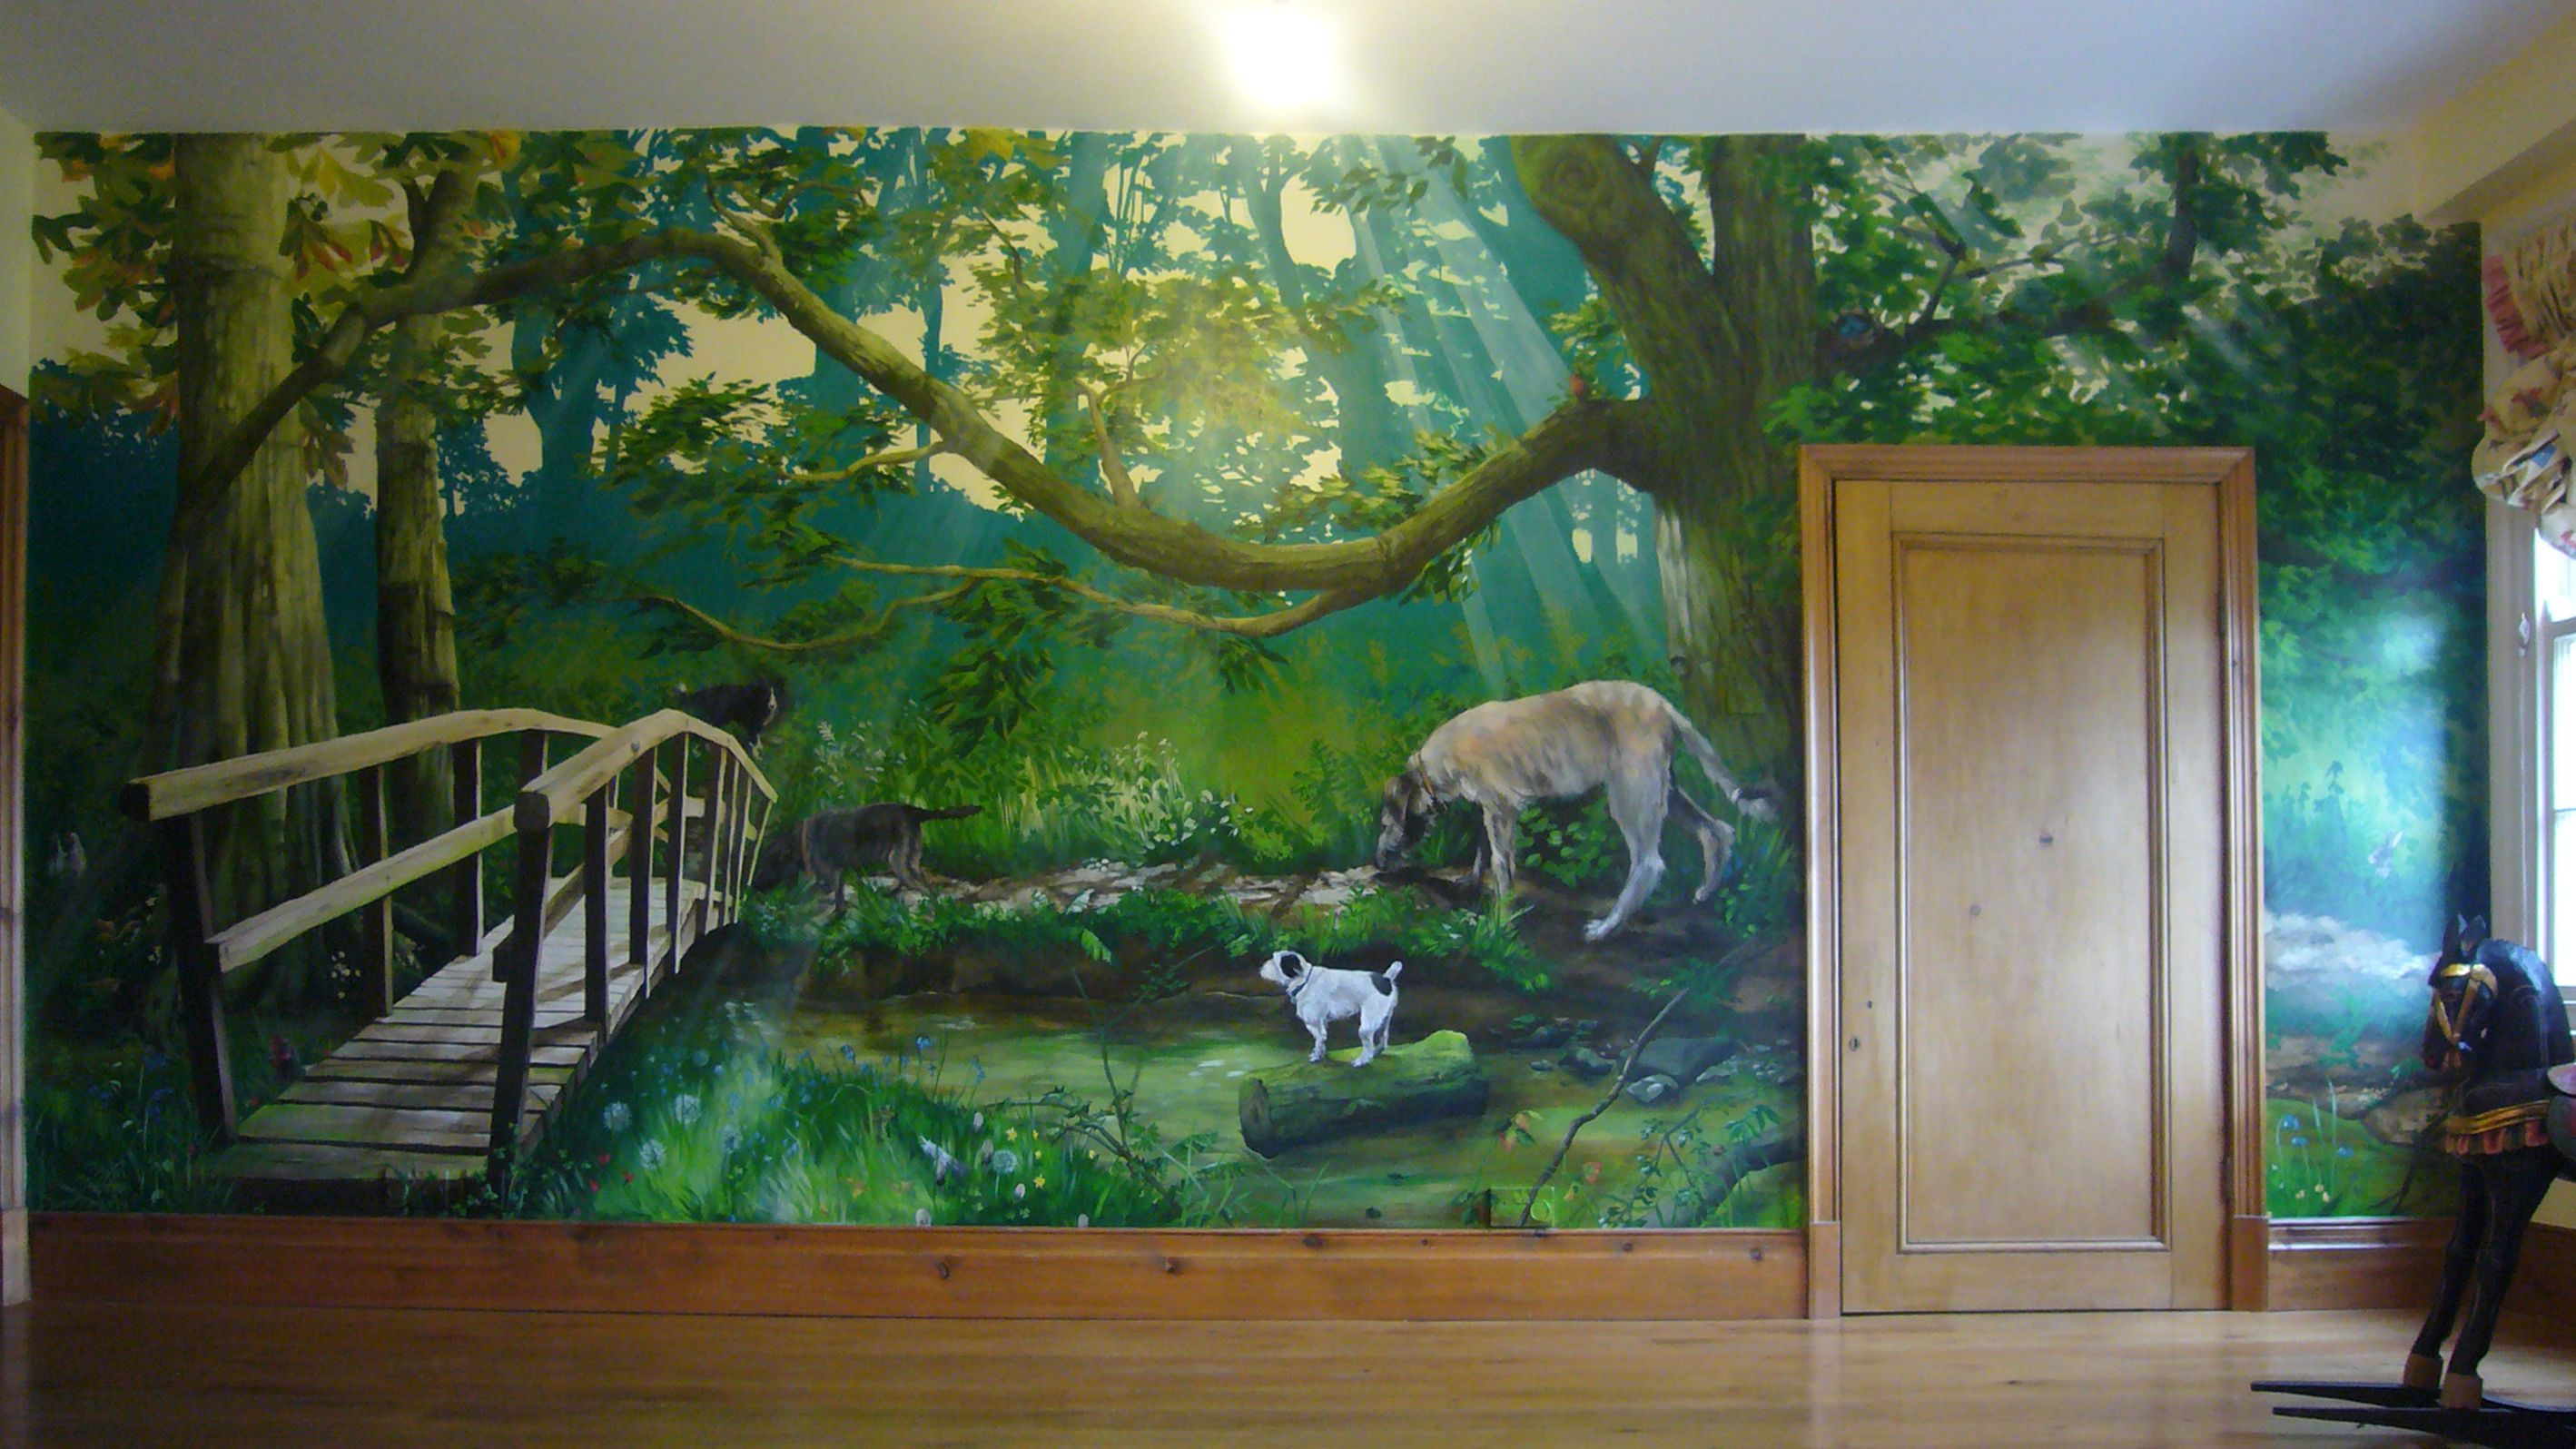 Wall Murals Wall Mural Ideas Nature By Homecaprice Com Murals